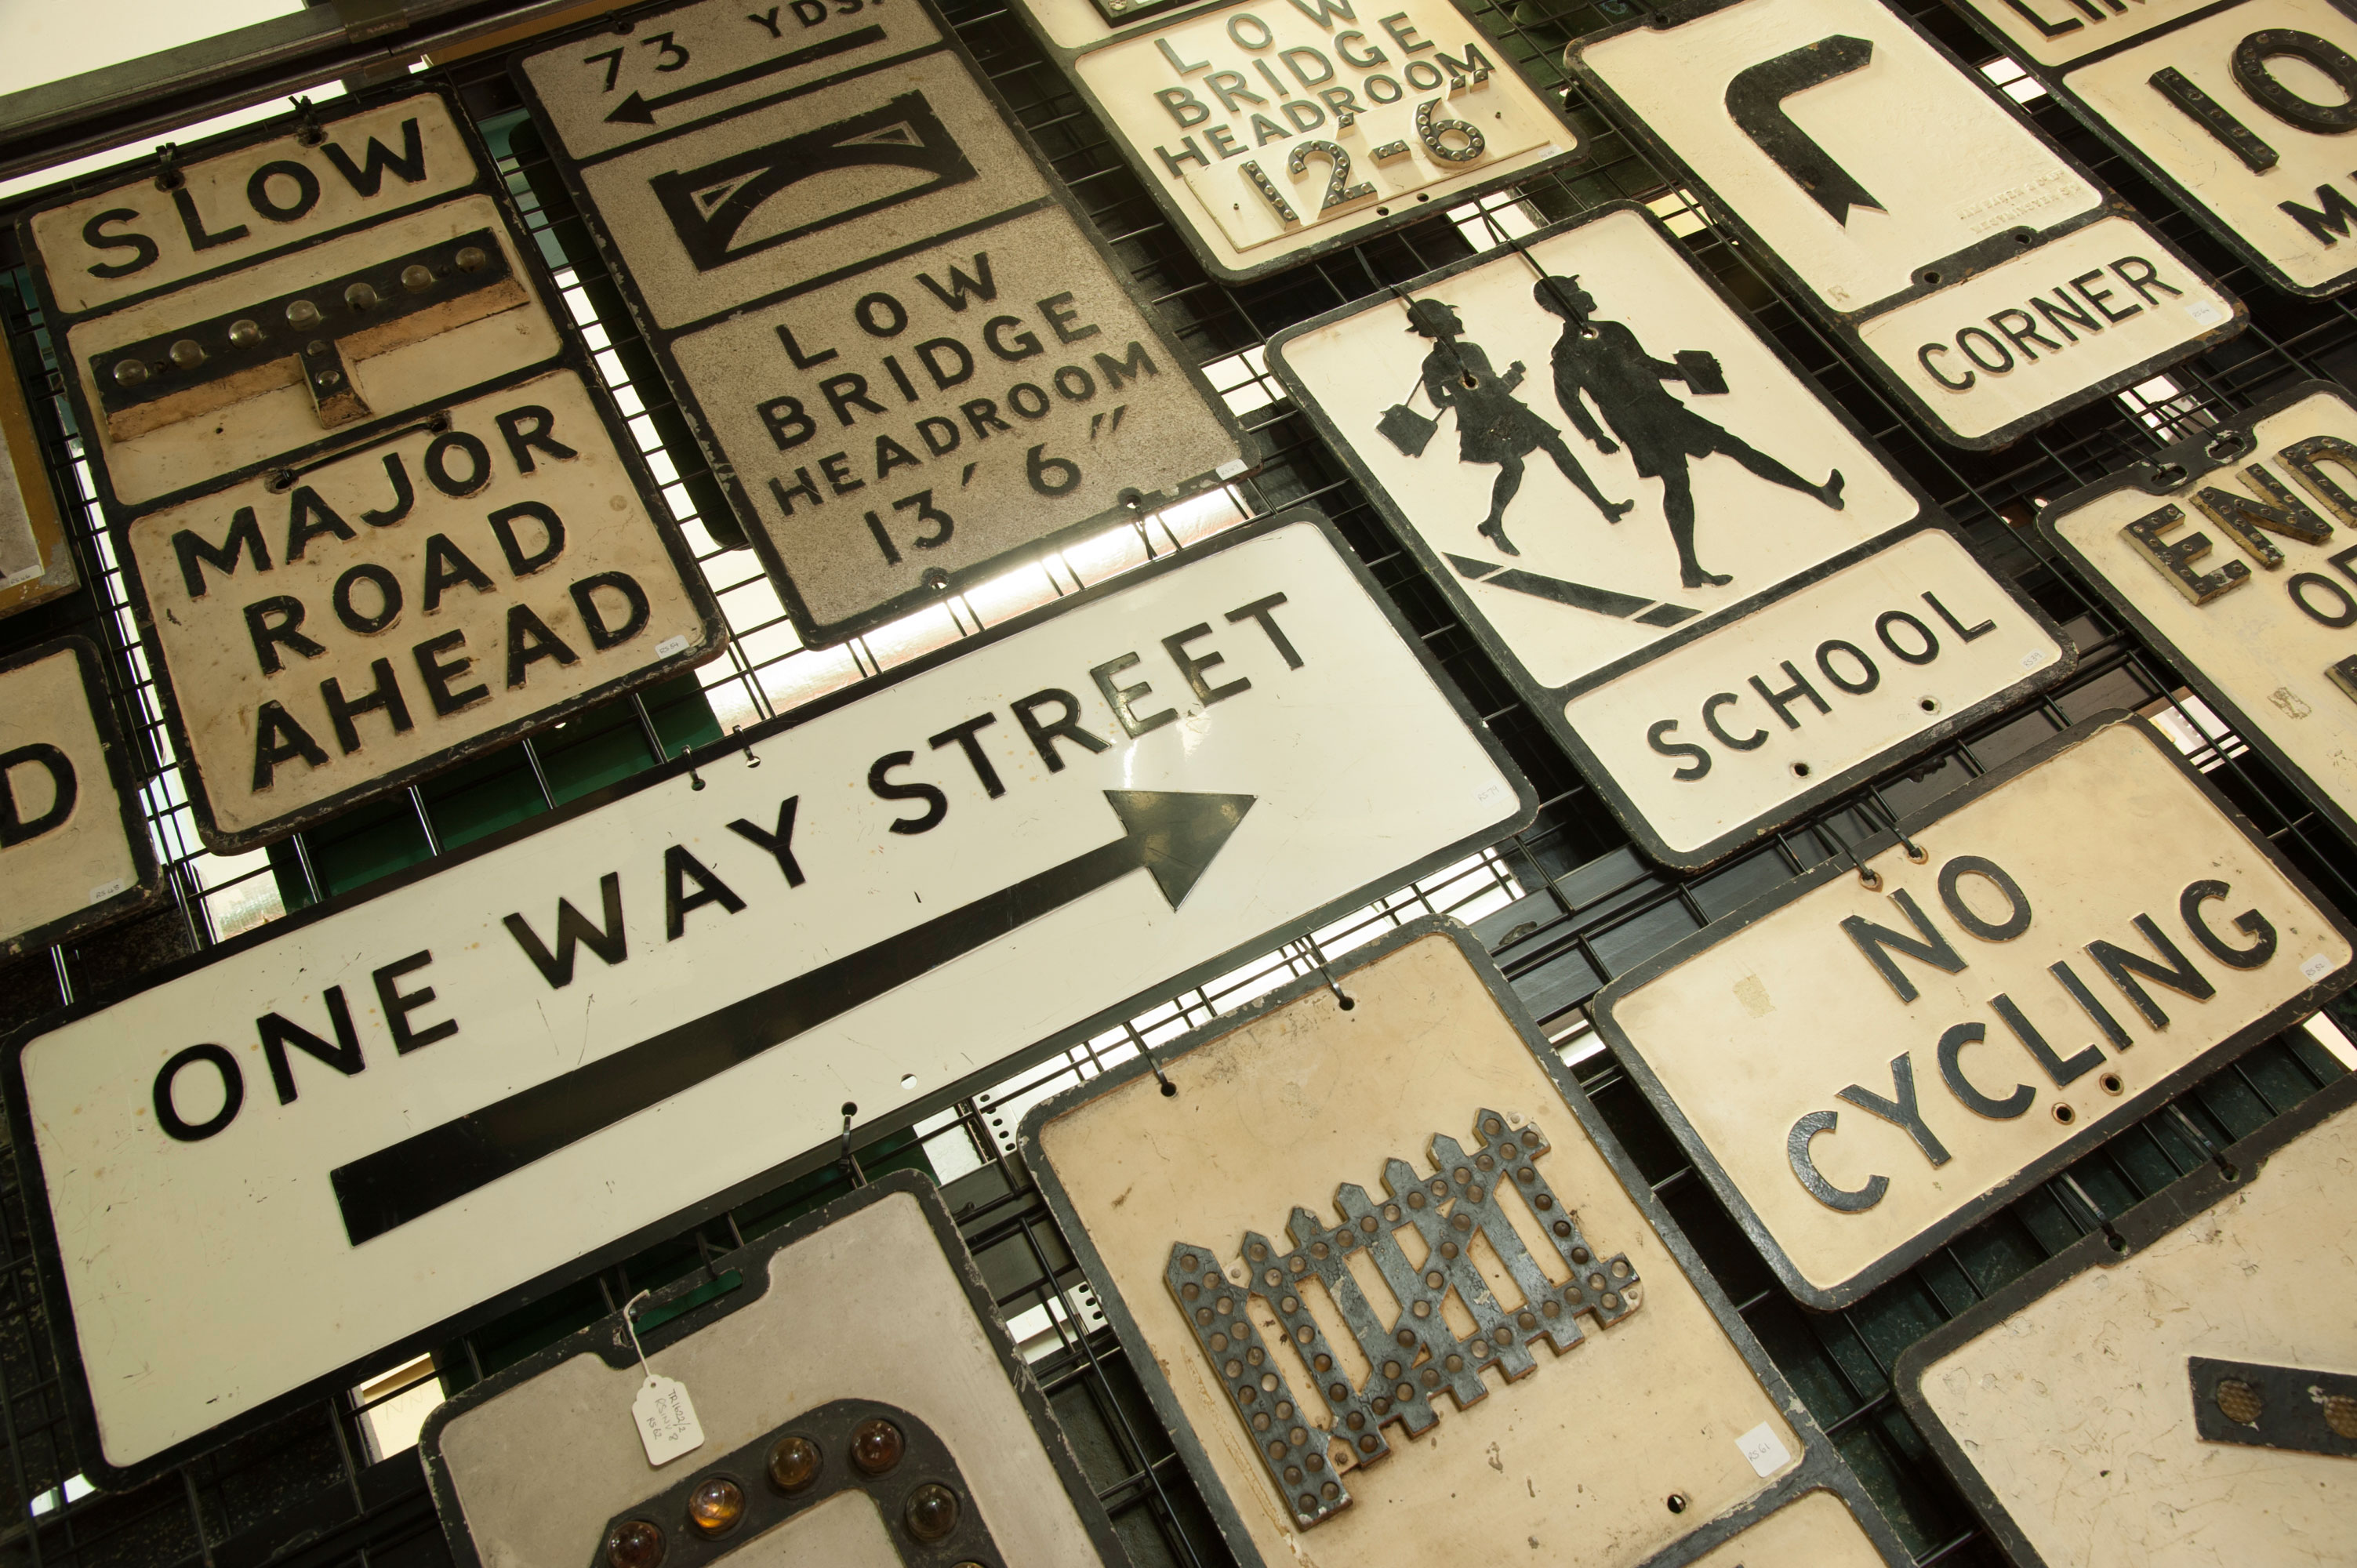 Old street signs for One Way Street, Major Road Ahead, School, No Cycling, Low Bridge